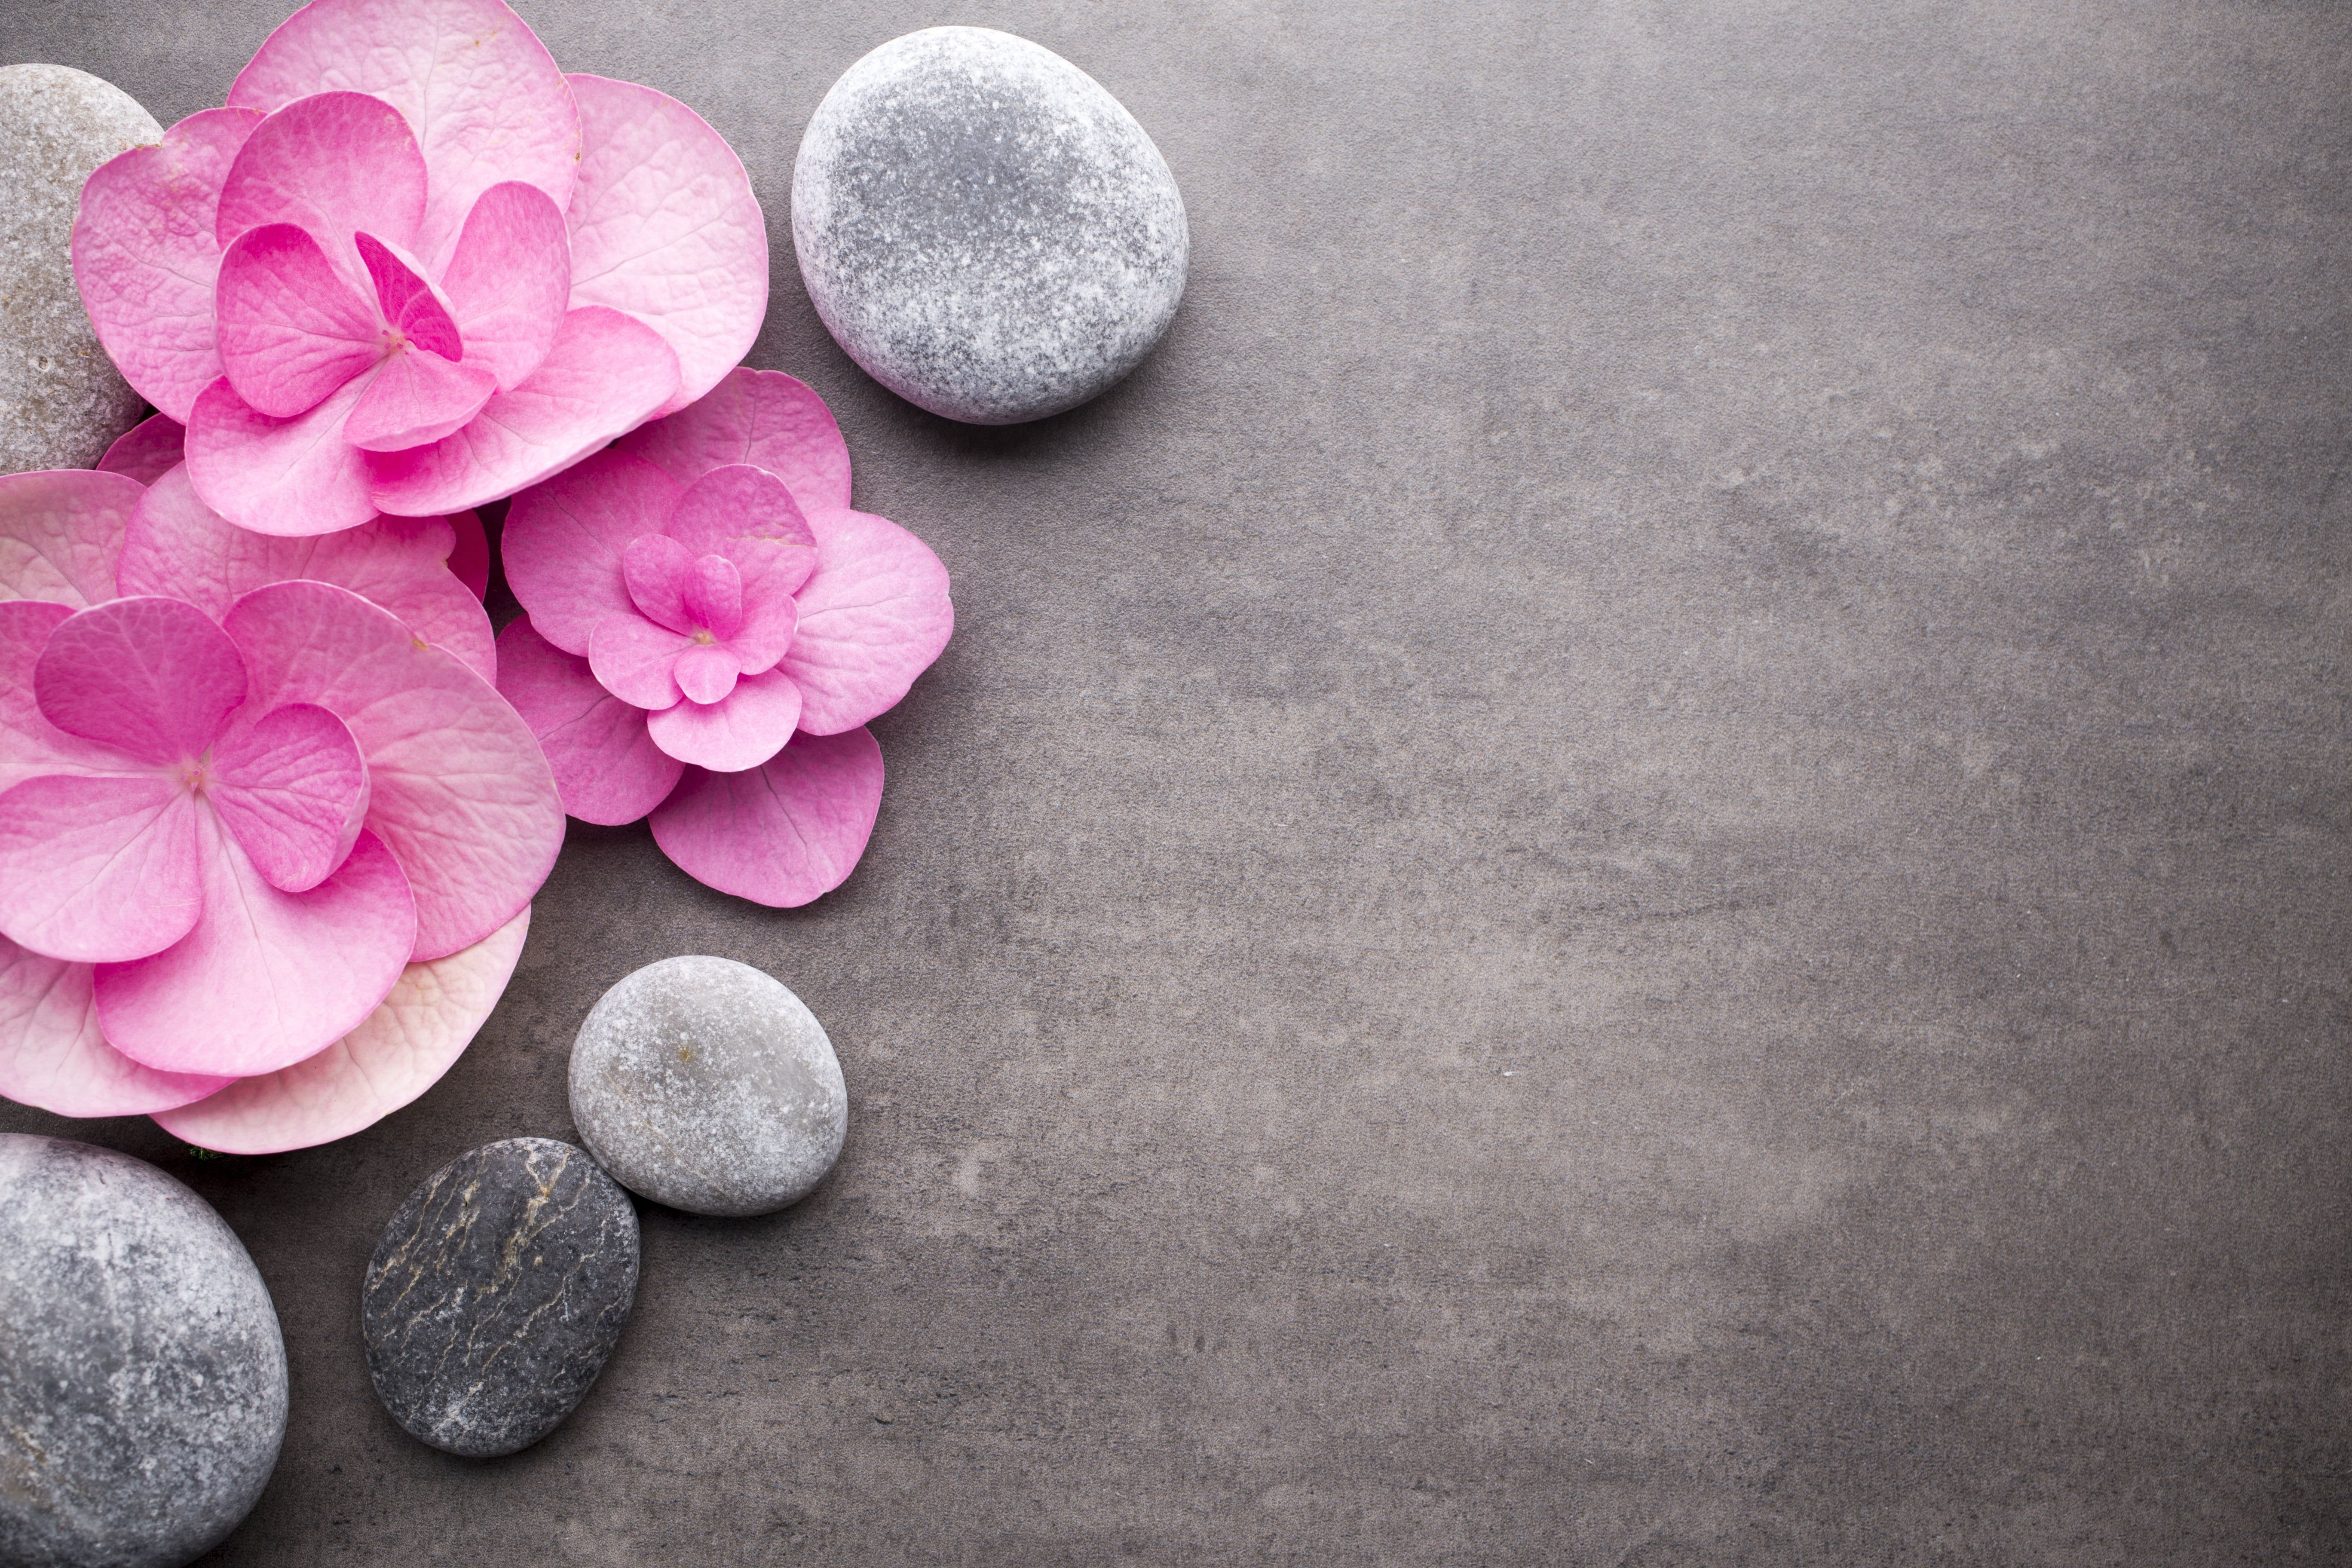 Flowers Stones Pink Pink Flowers Stones Spa Zen 5k Wallpaper Hdwallpaper Desktop Pink Wallpaper Pc Zen Background Spa Images